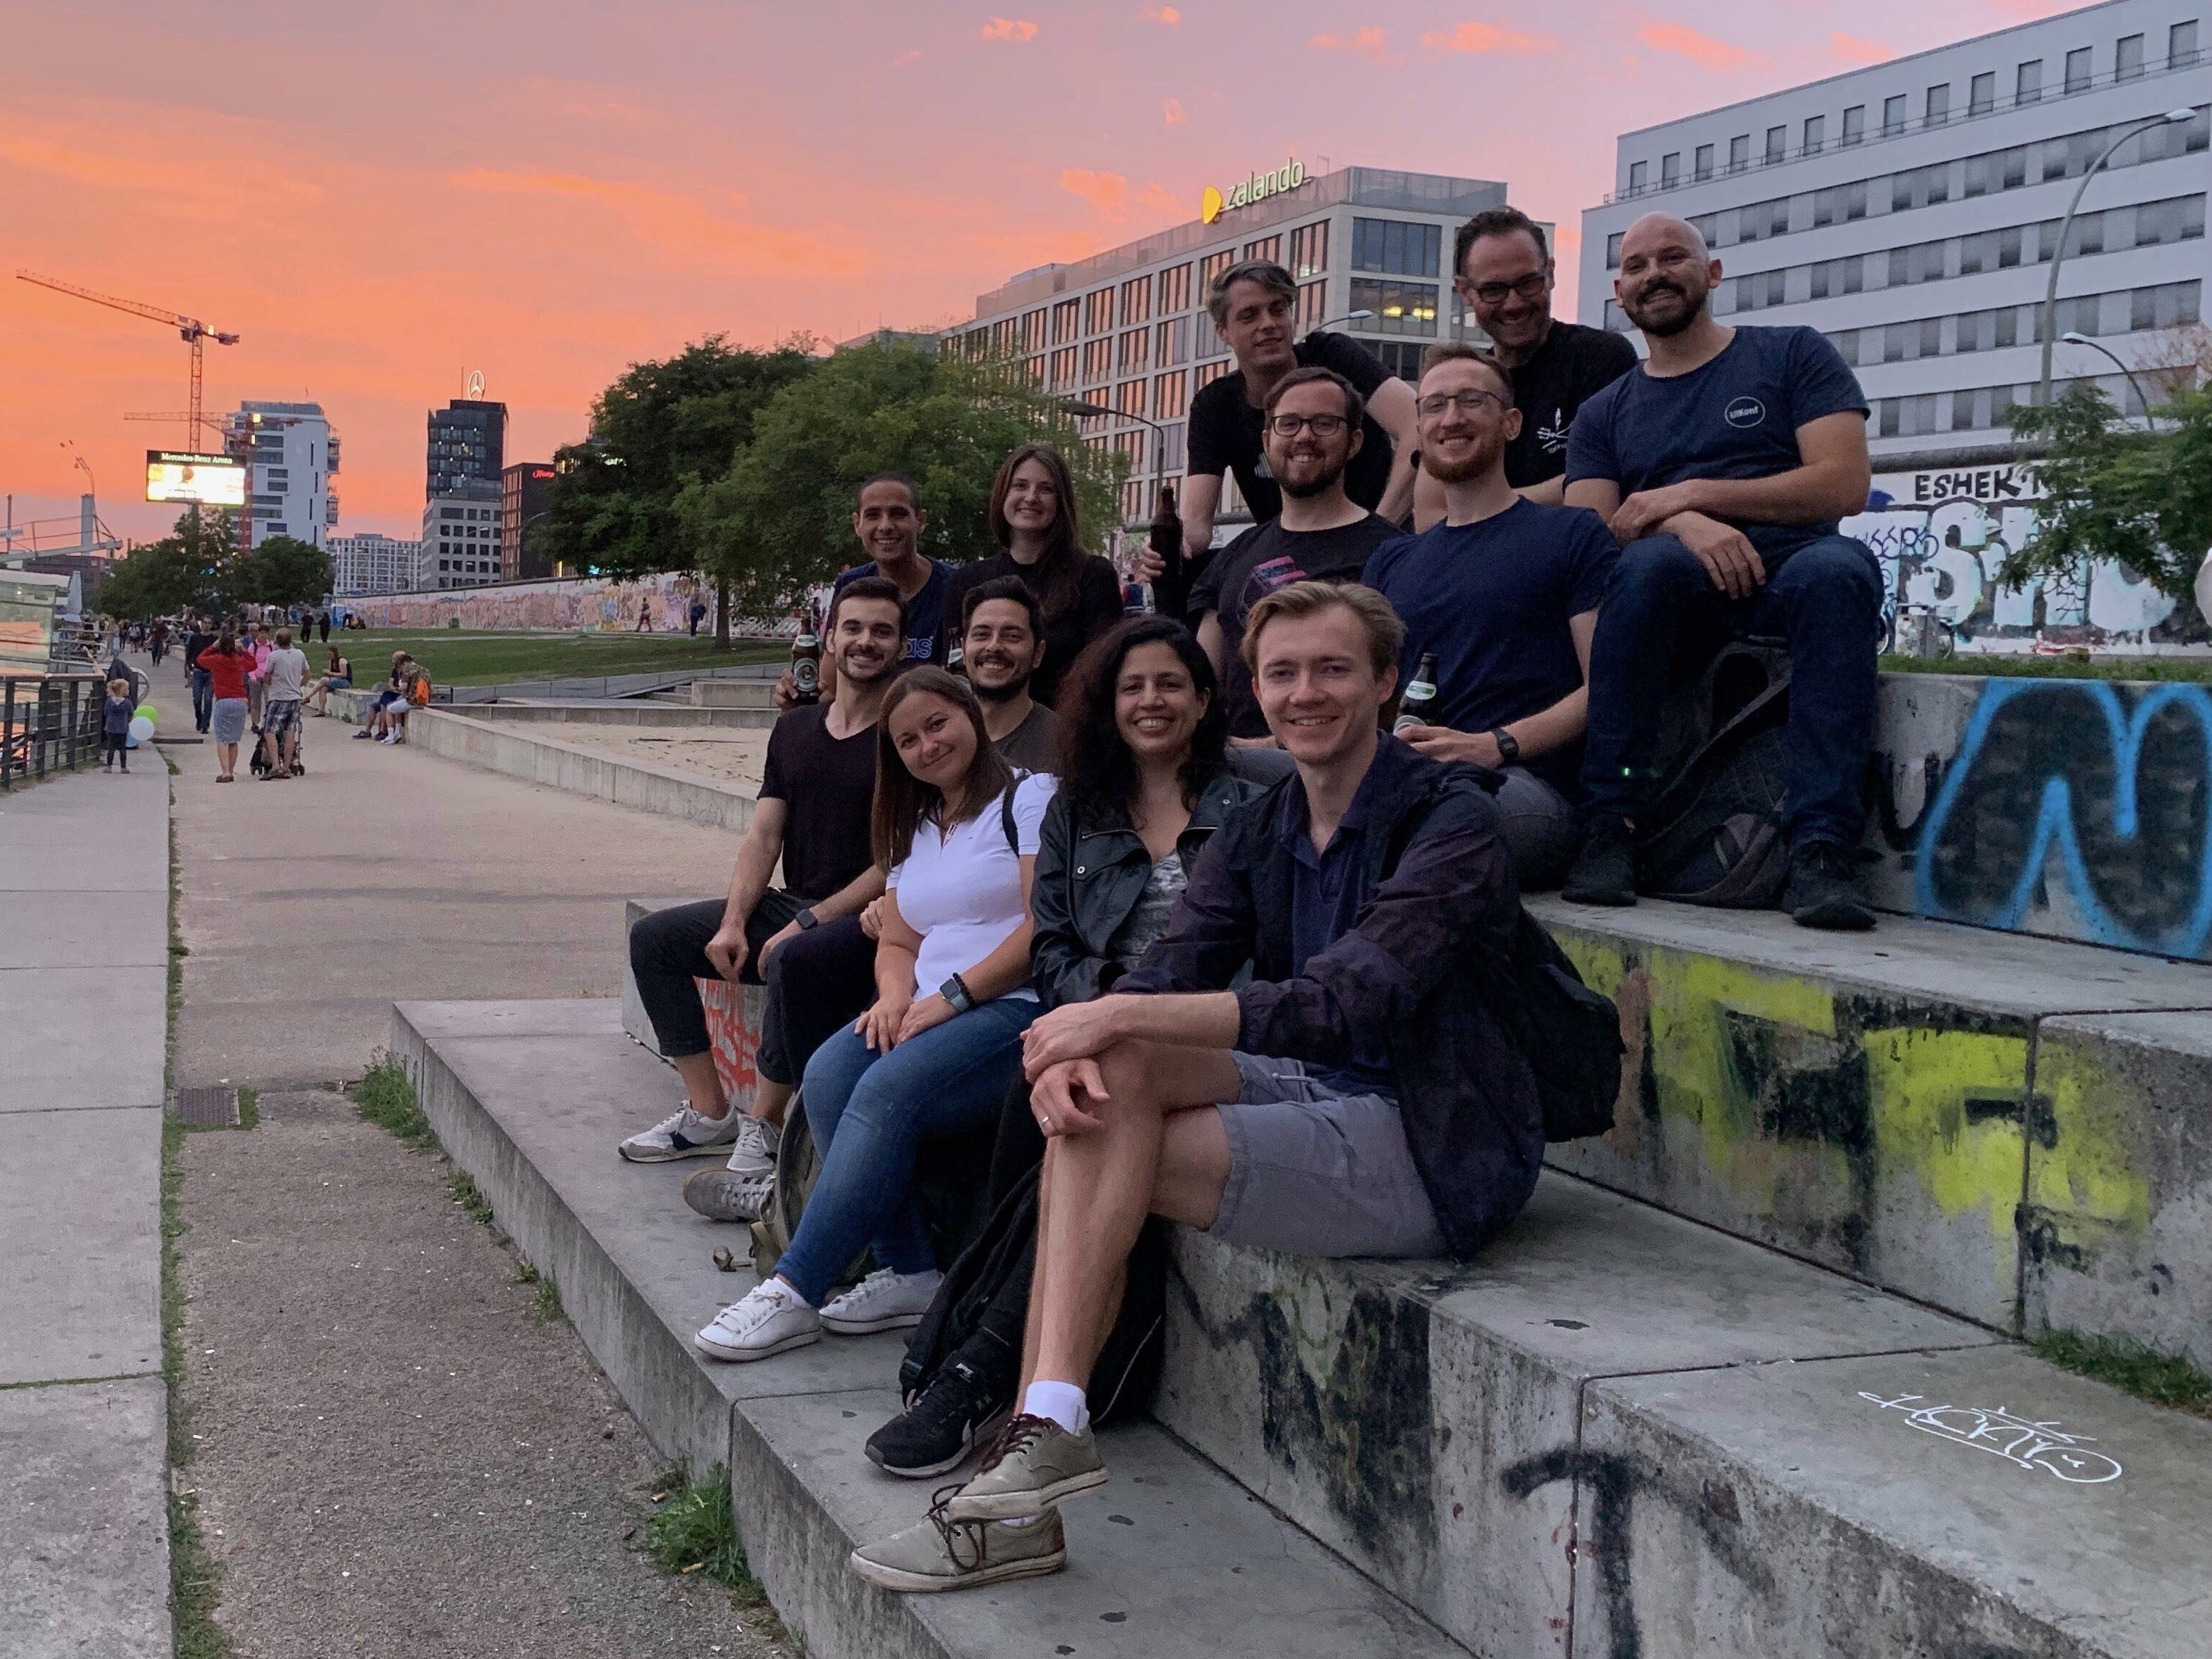 A photograph of 9 men and 3 women seated on concrete stairs in front a Berlin sunset